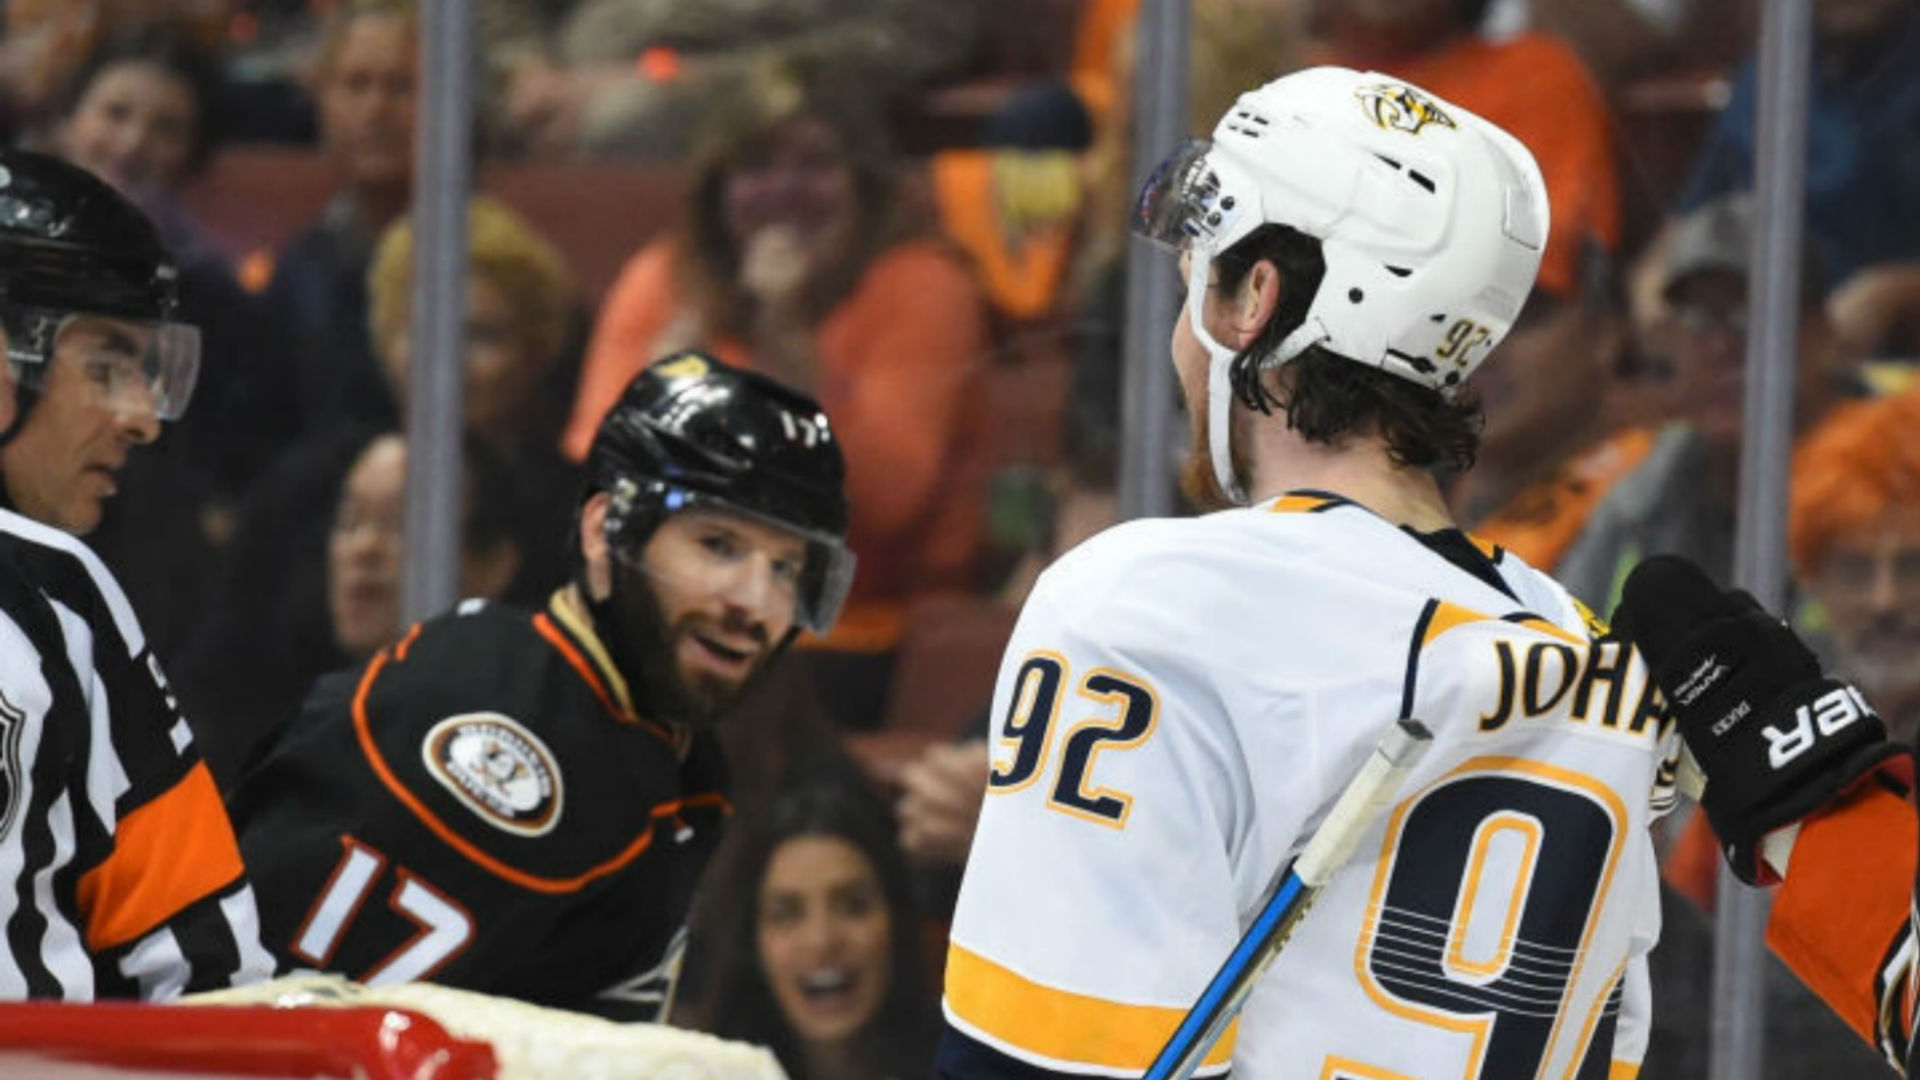 Filip Forsberg: Filip Forsberg scores in third straight game